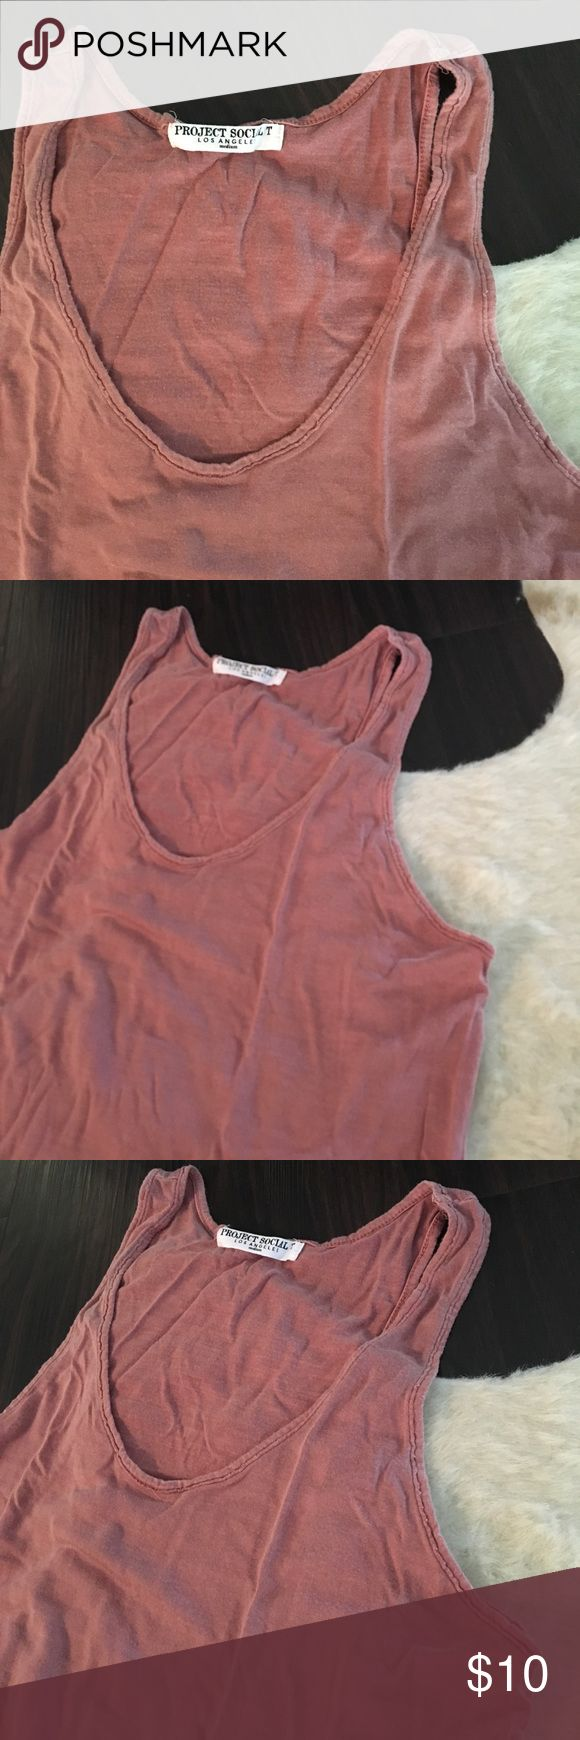 Project Social T Soft Tank Top Soft Cotton. Made in USA. Project Social T. Size Medium Urban Outfitters Tops Tank Tops